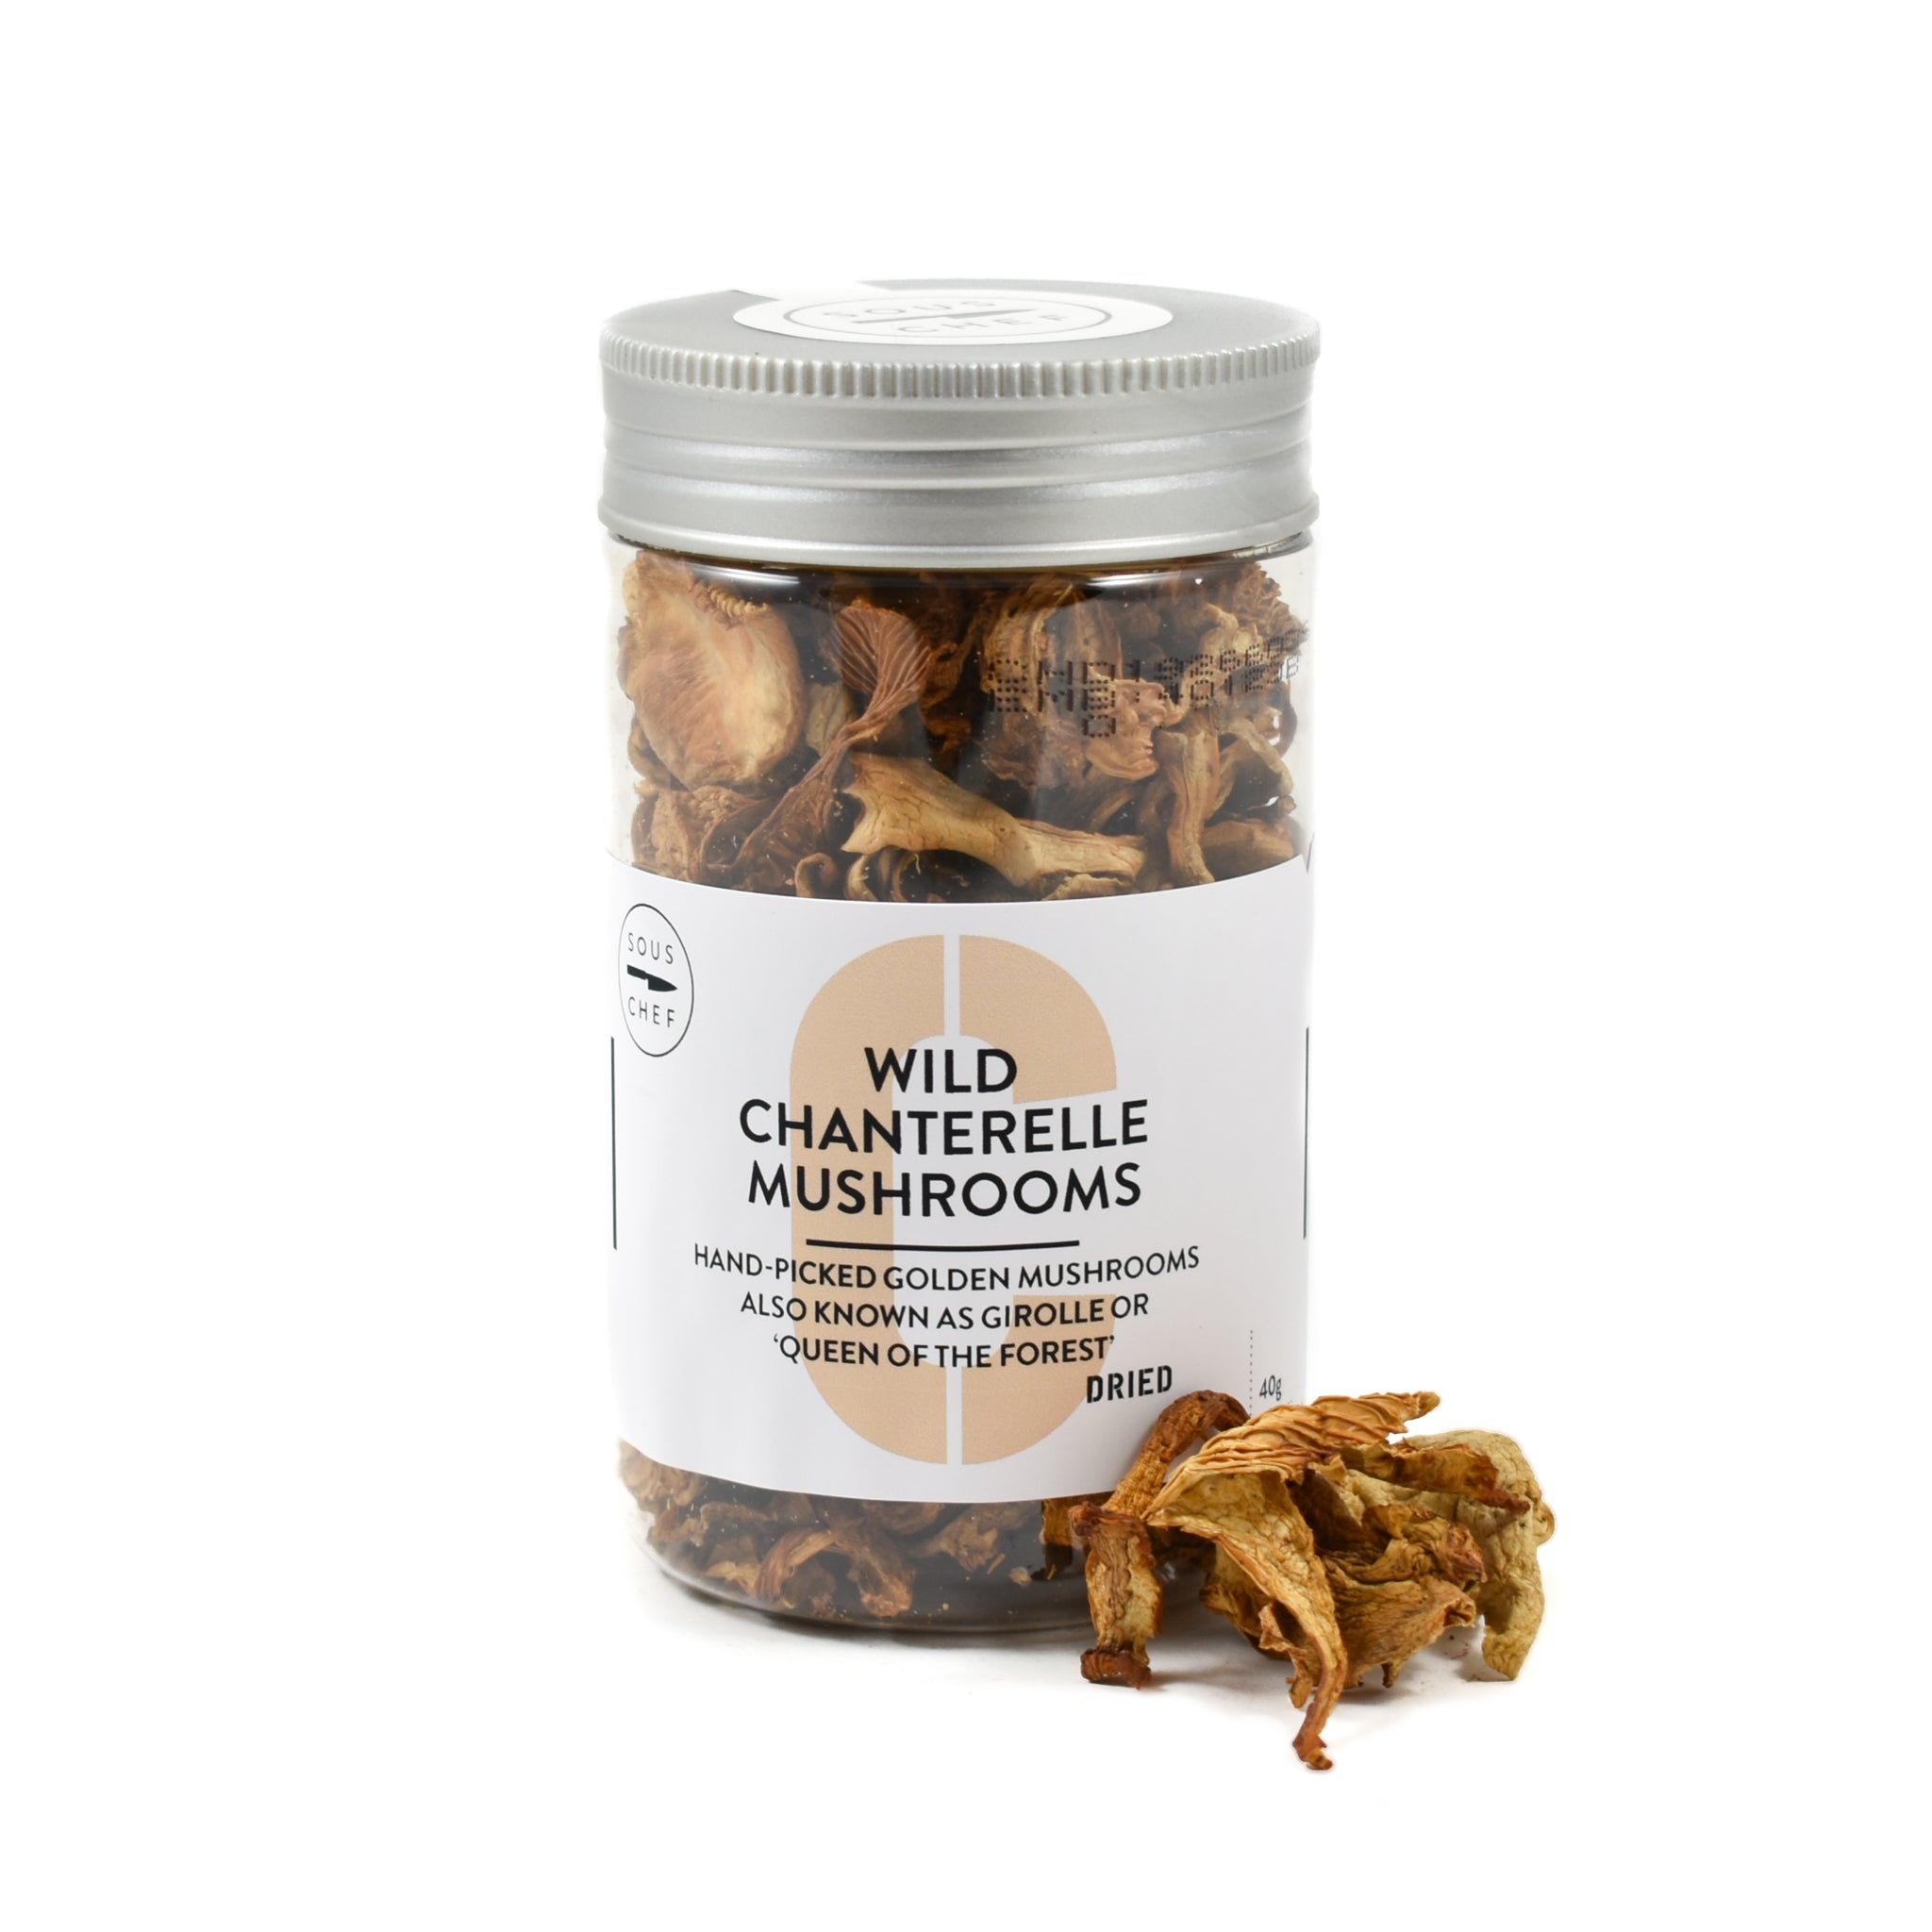 Sous Chef Dried Wild Chanterelle Mushrooms 40g